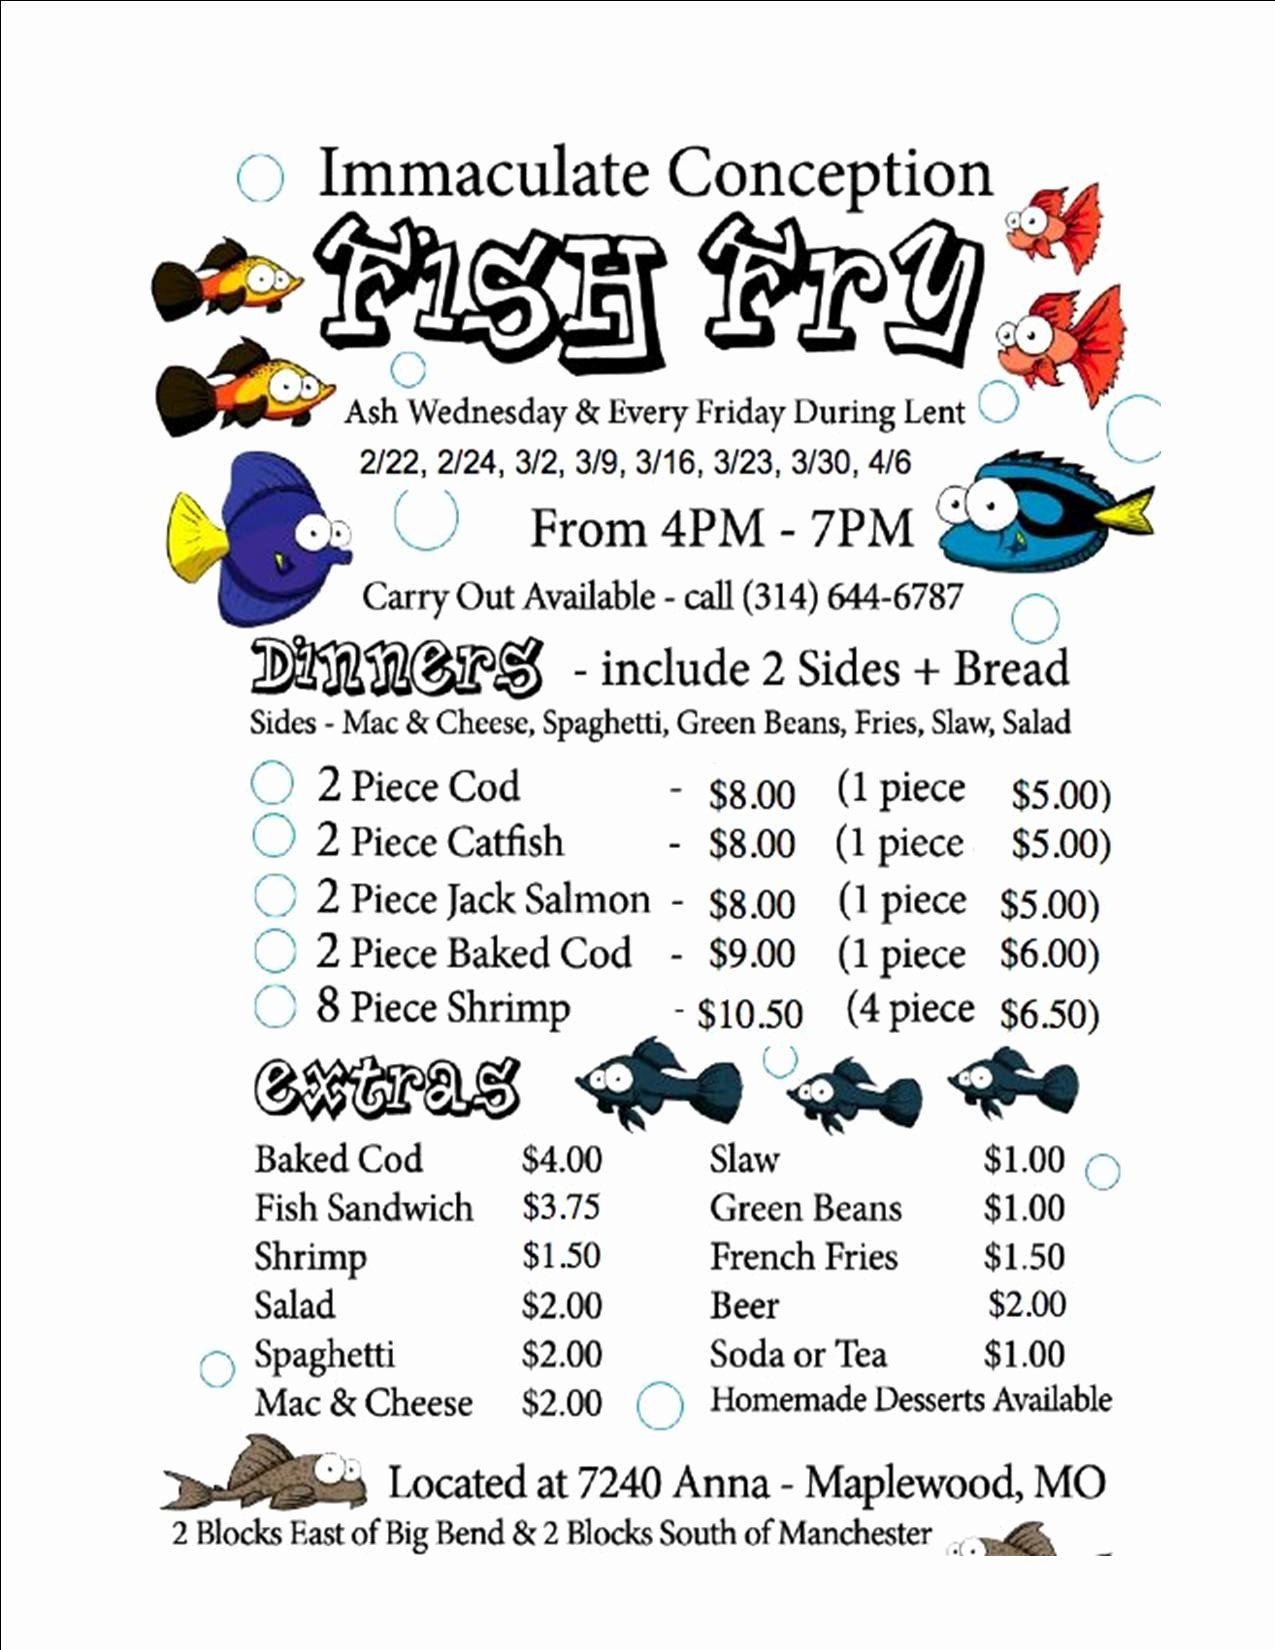 Fish Fry Flyer 2012 – Immaculate Conception Parish